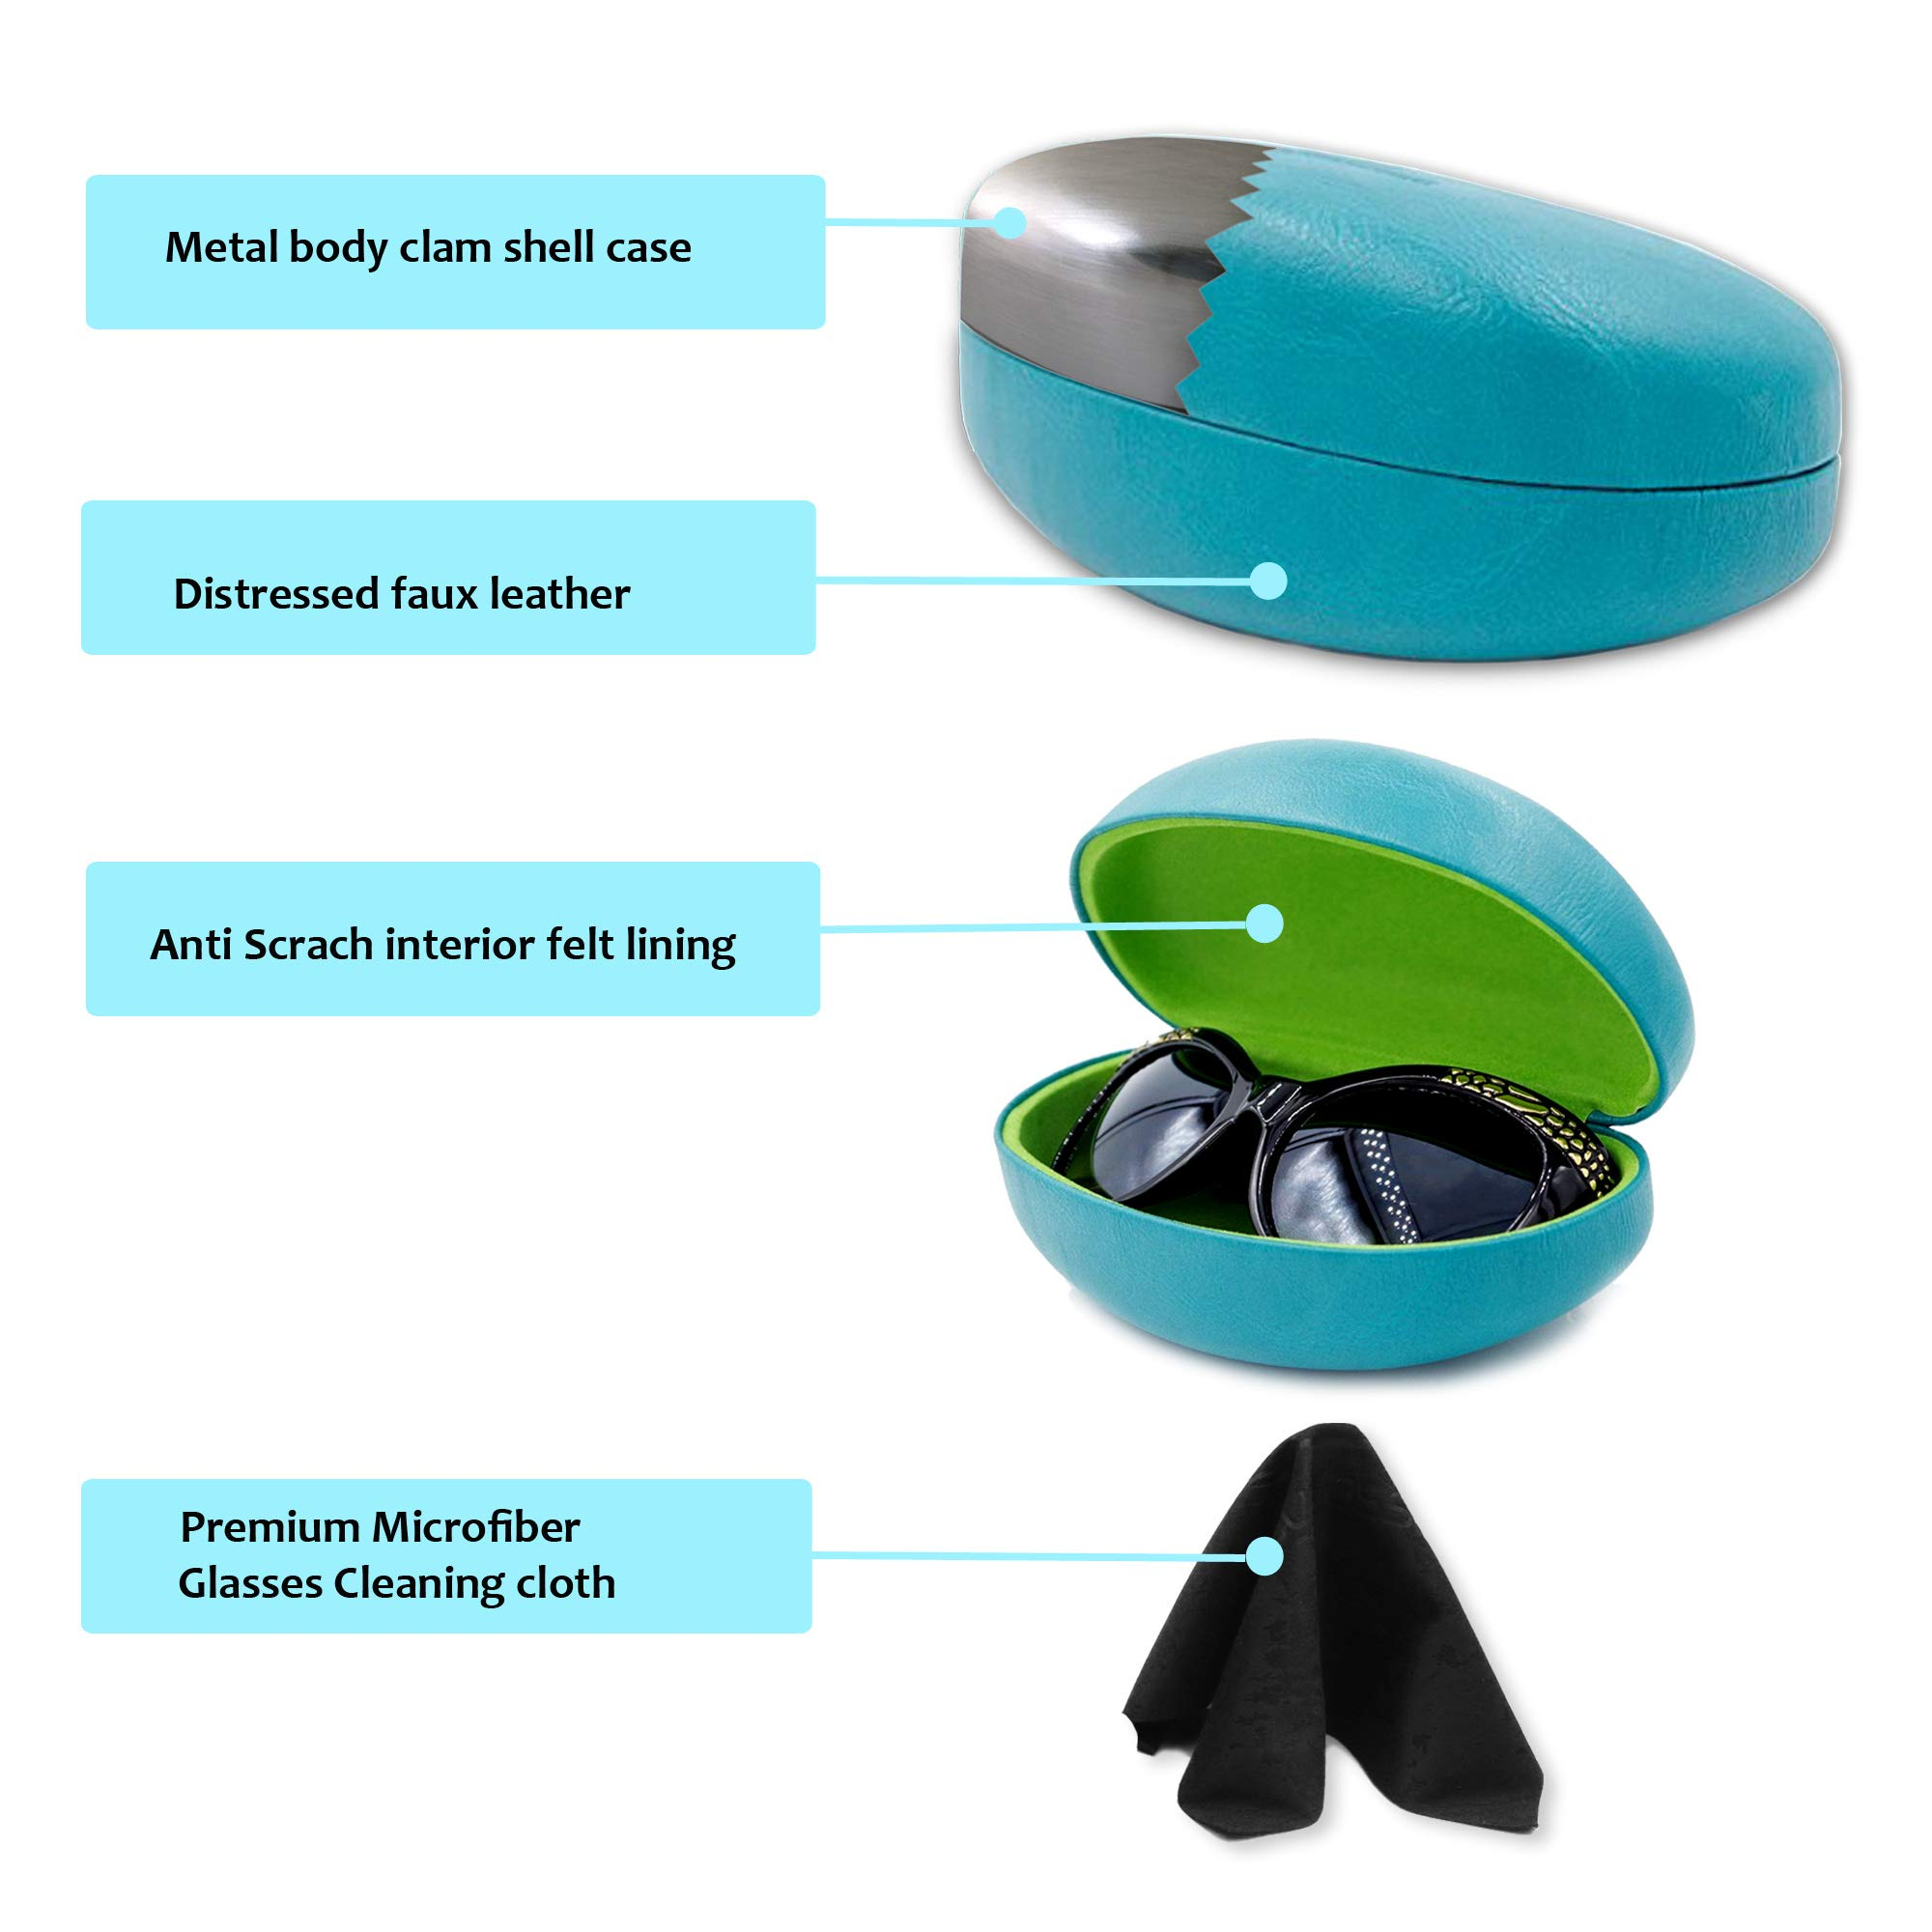 Premium Sunglasses Case with Microfiber Cleaning Cloth - Hard for Medium & Large | For Men & Women | Protective | Sturdy | AS413 Teal by MyEyeglassCase (Image #2)